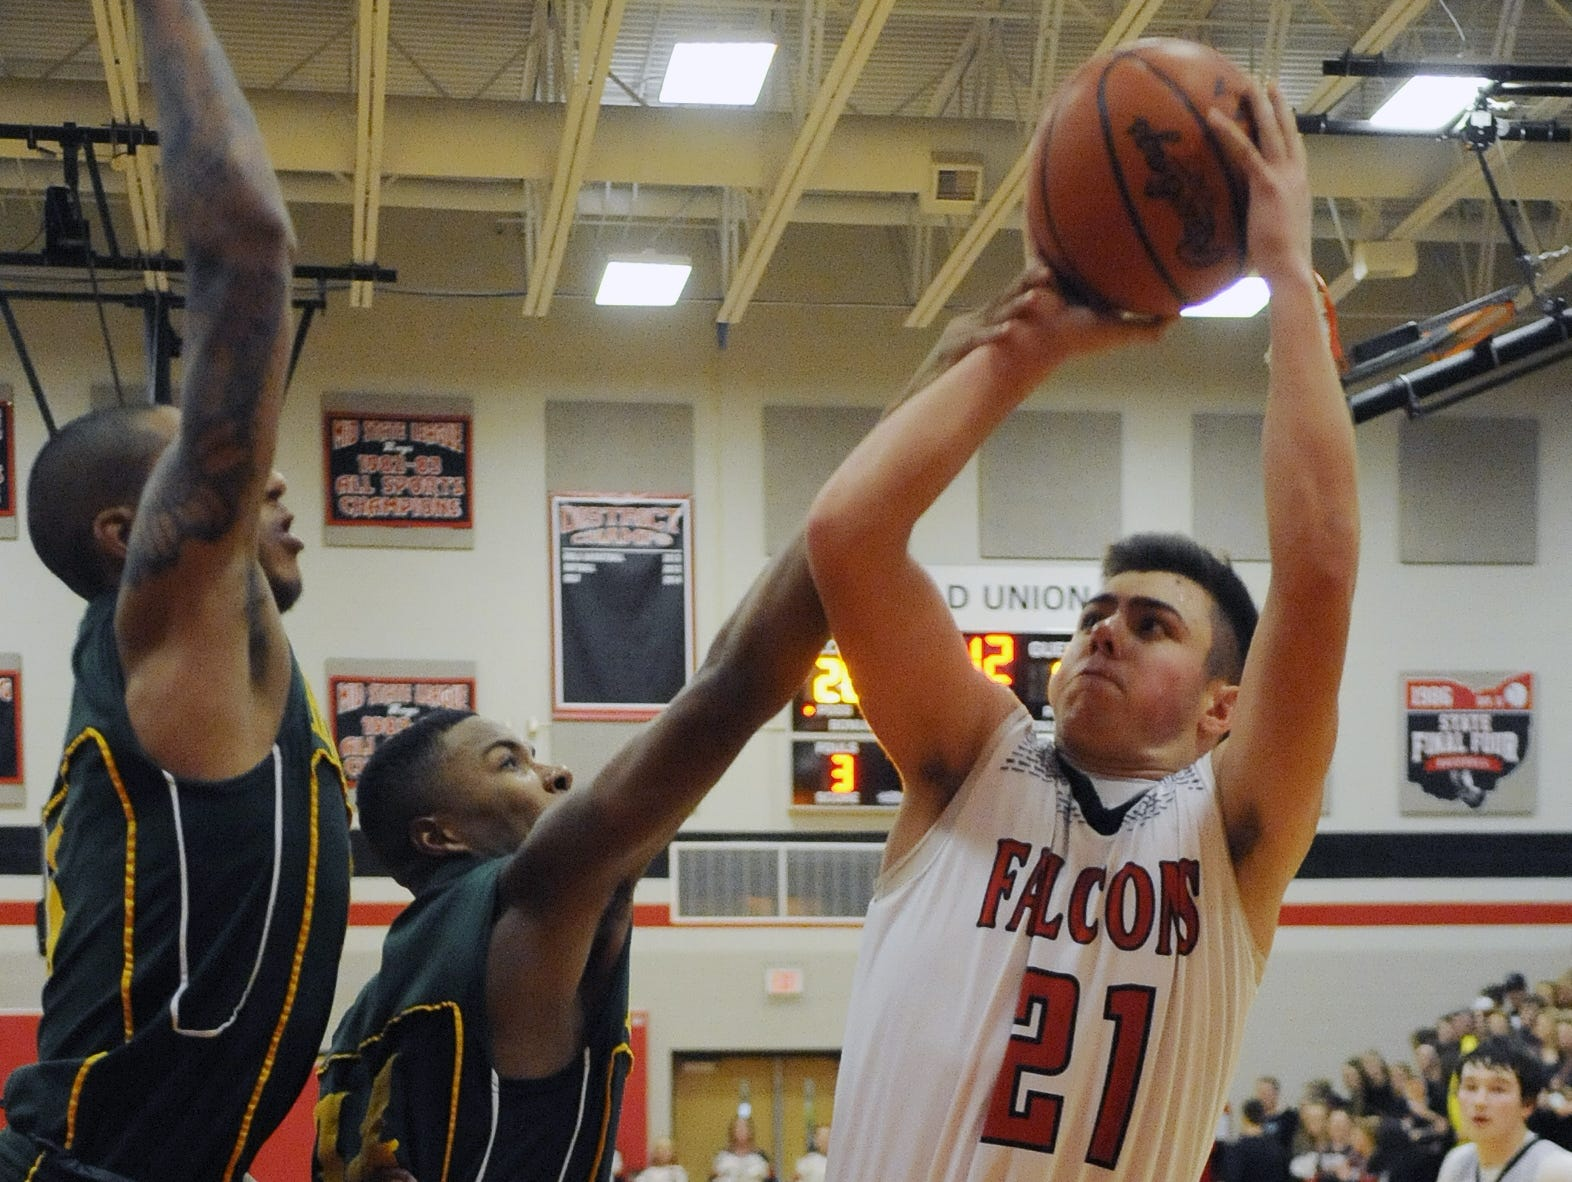 Thomas Green is one of four starters returning for the Fairfield Union boys basketball team.